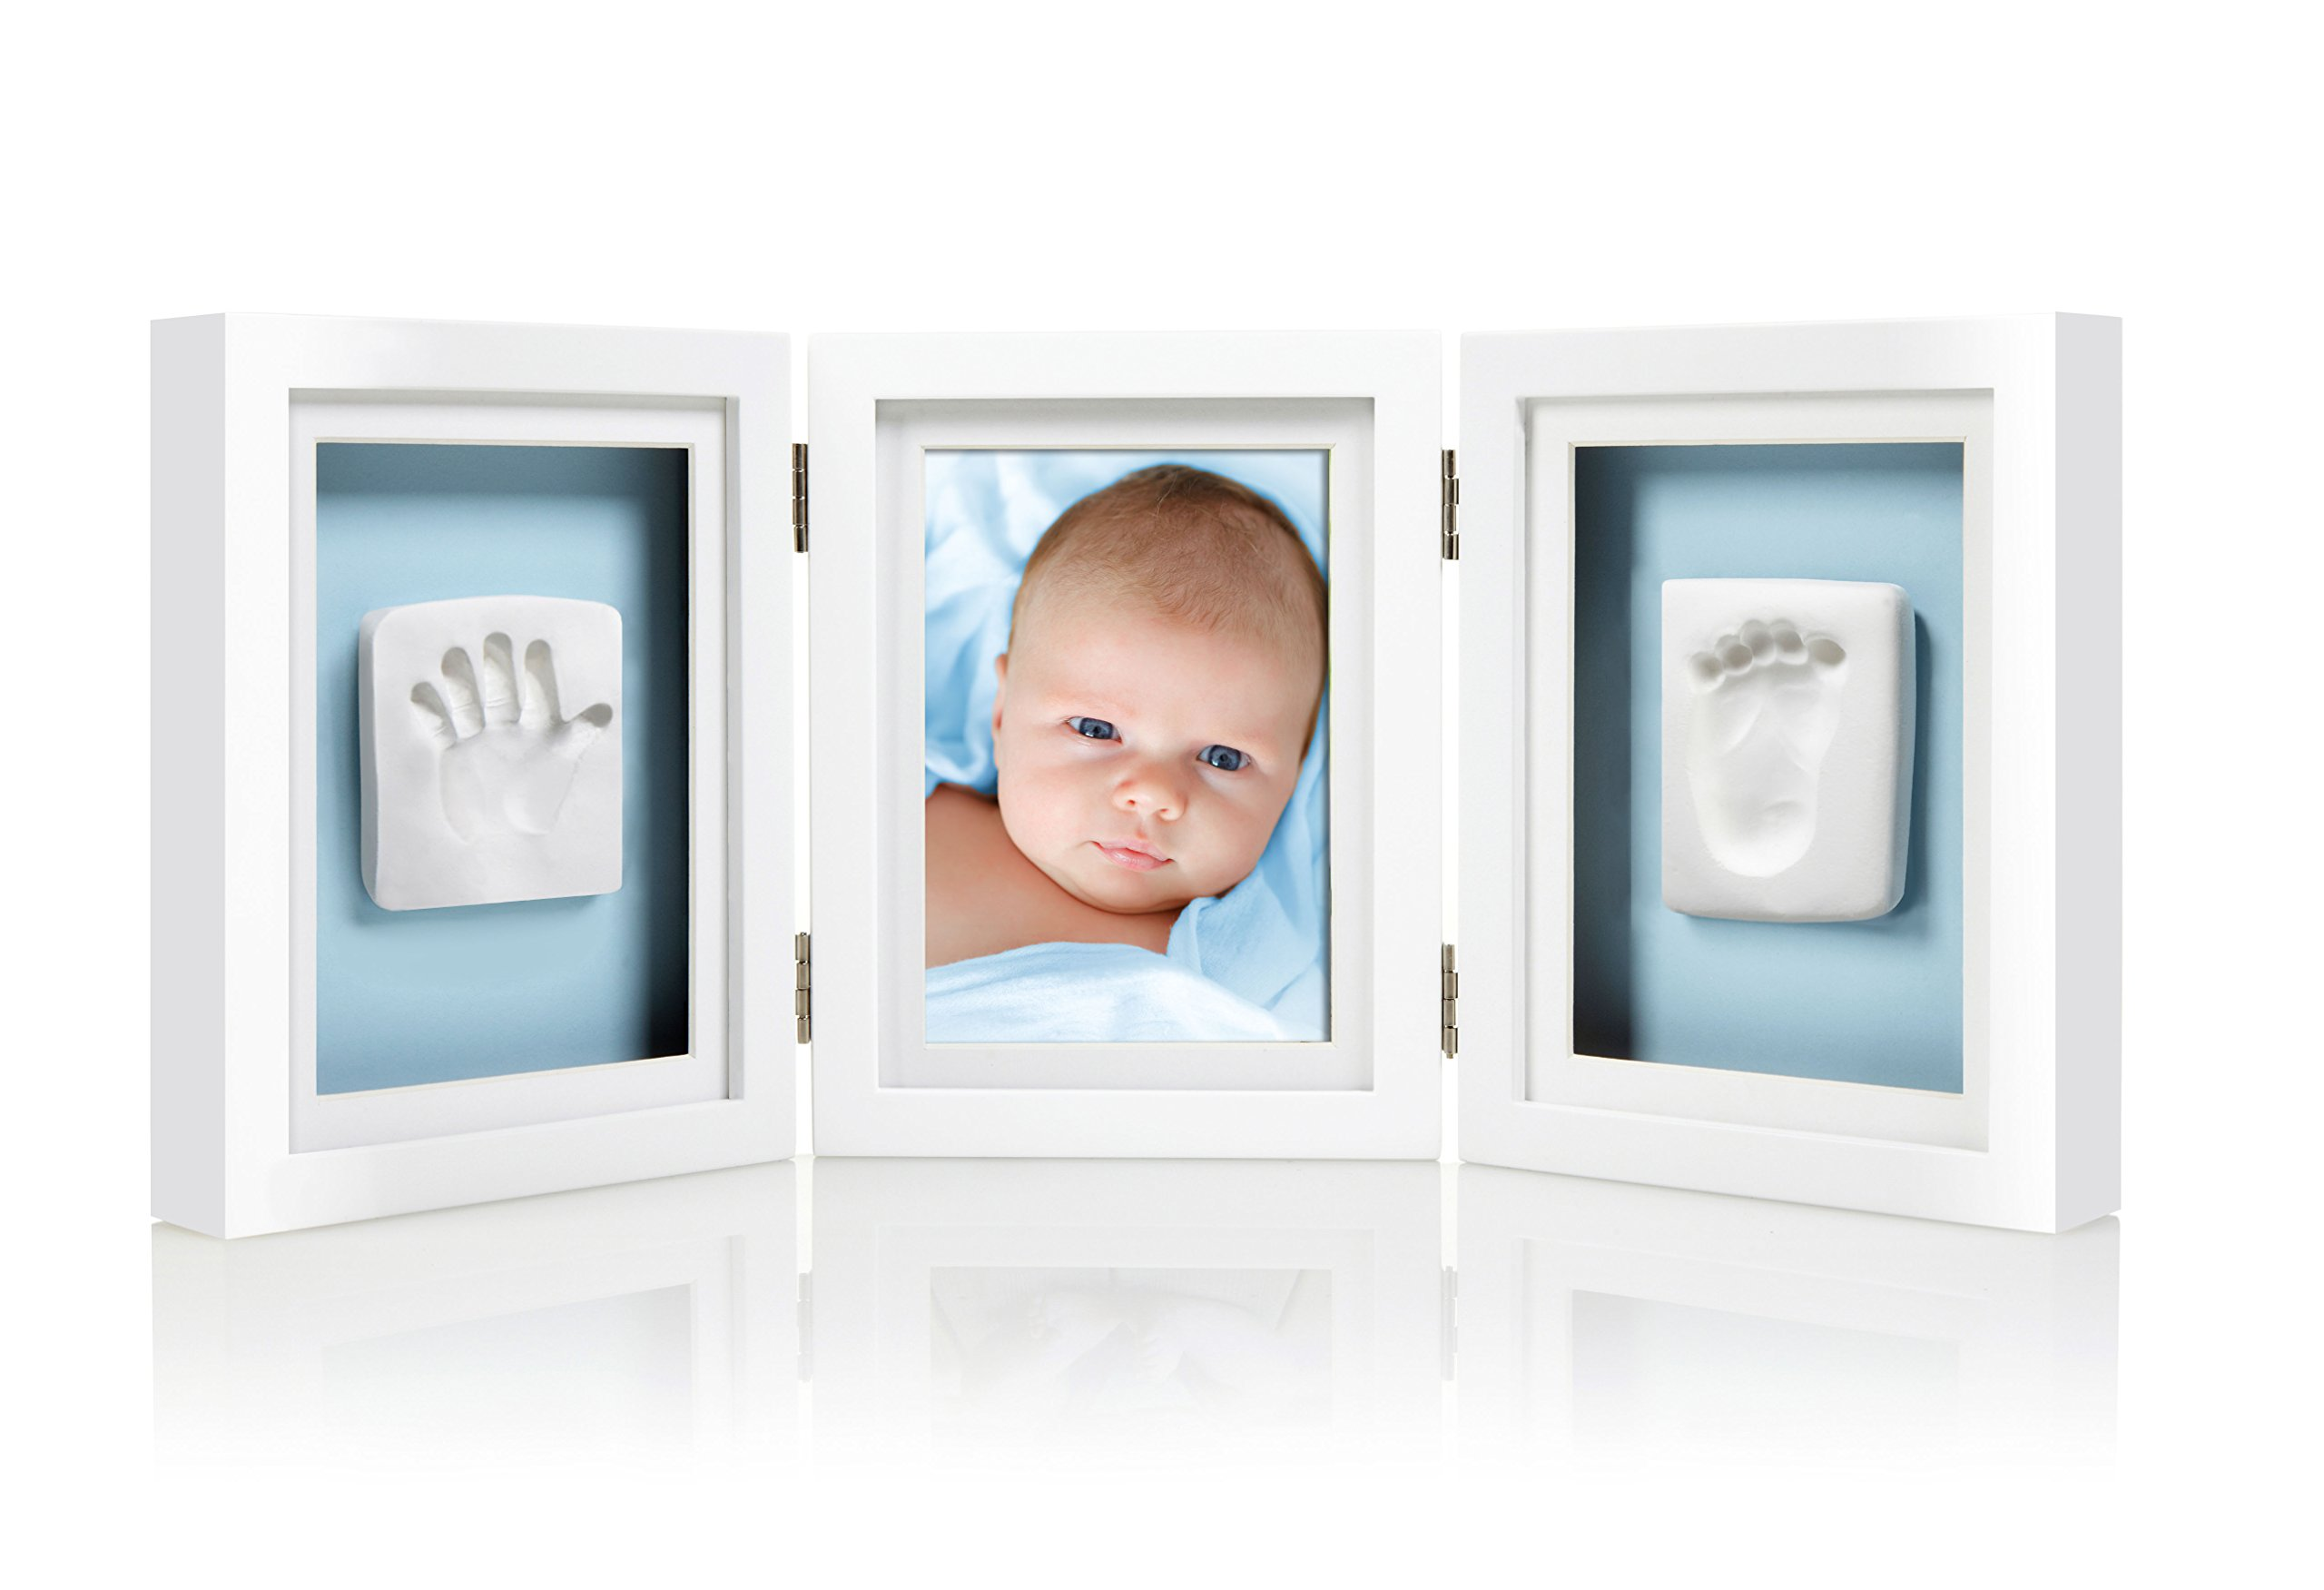 Pearhead Babyprints Newborn Baby Handprint and Footprint Deluxe Desk Photo Frame & Impression Kit - Makes A Perfect Baby Shower Gift, White by Pearhead